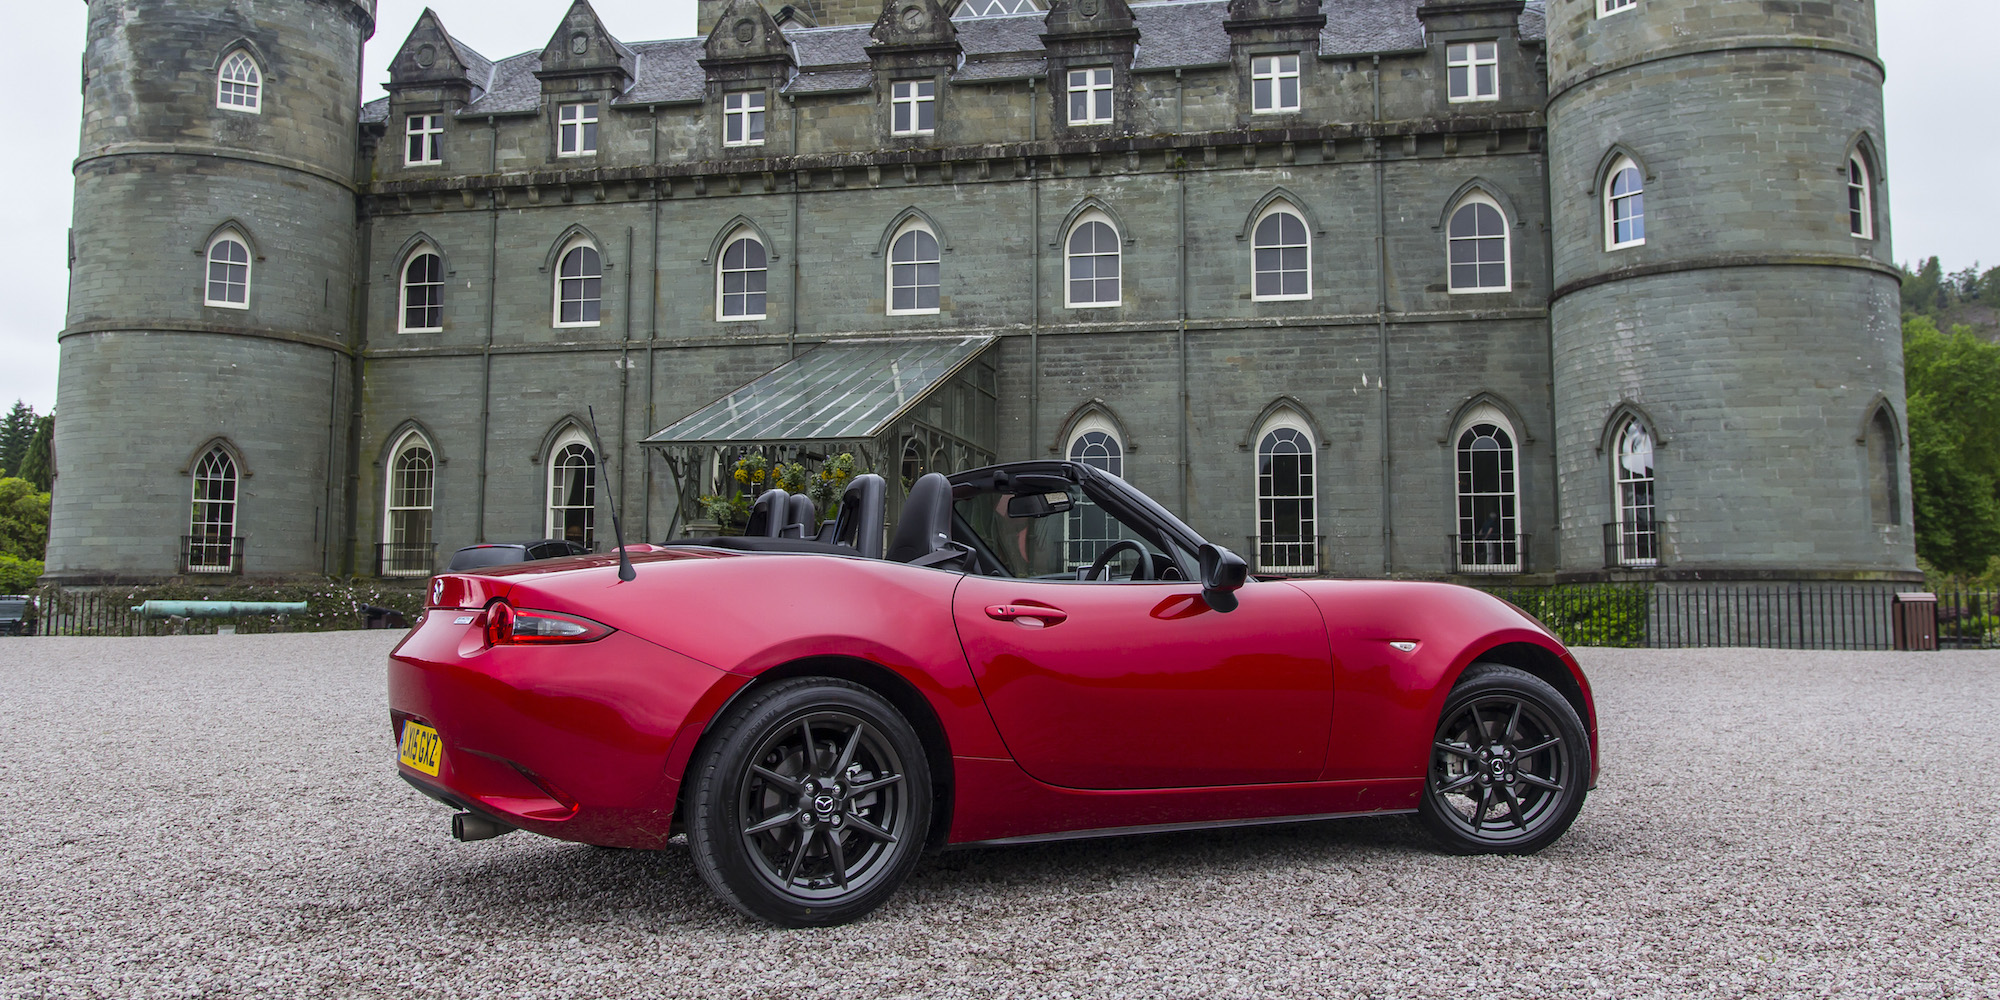 2016 Mazda Mx 5 Rear Side View (View 6 of 31)